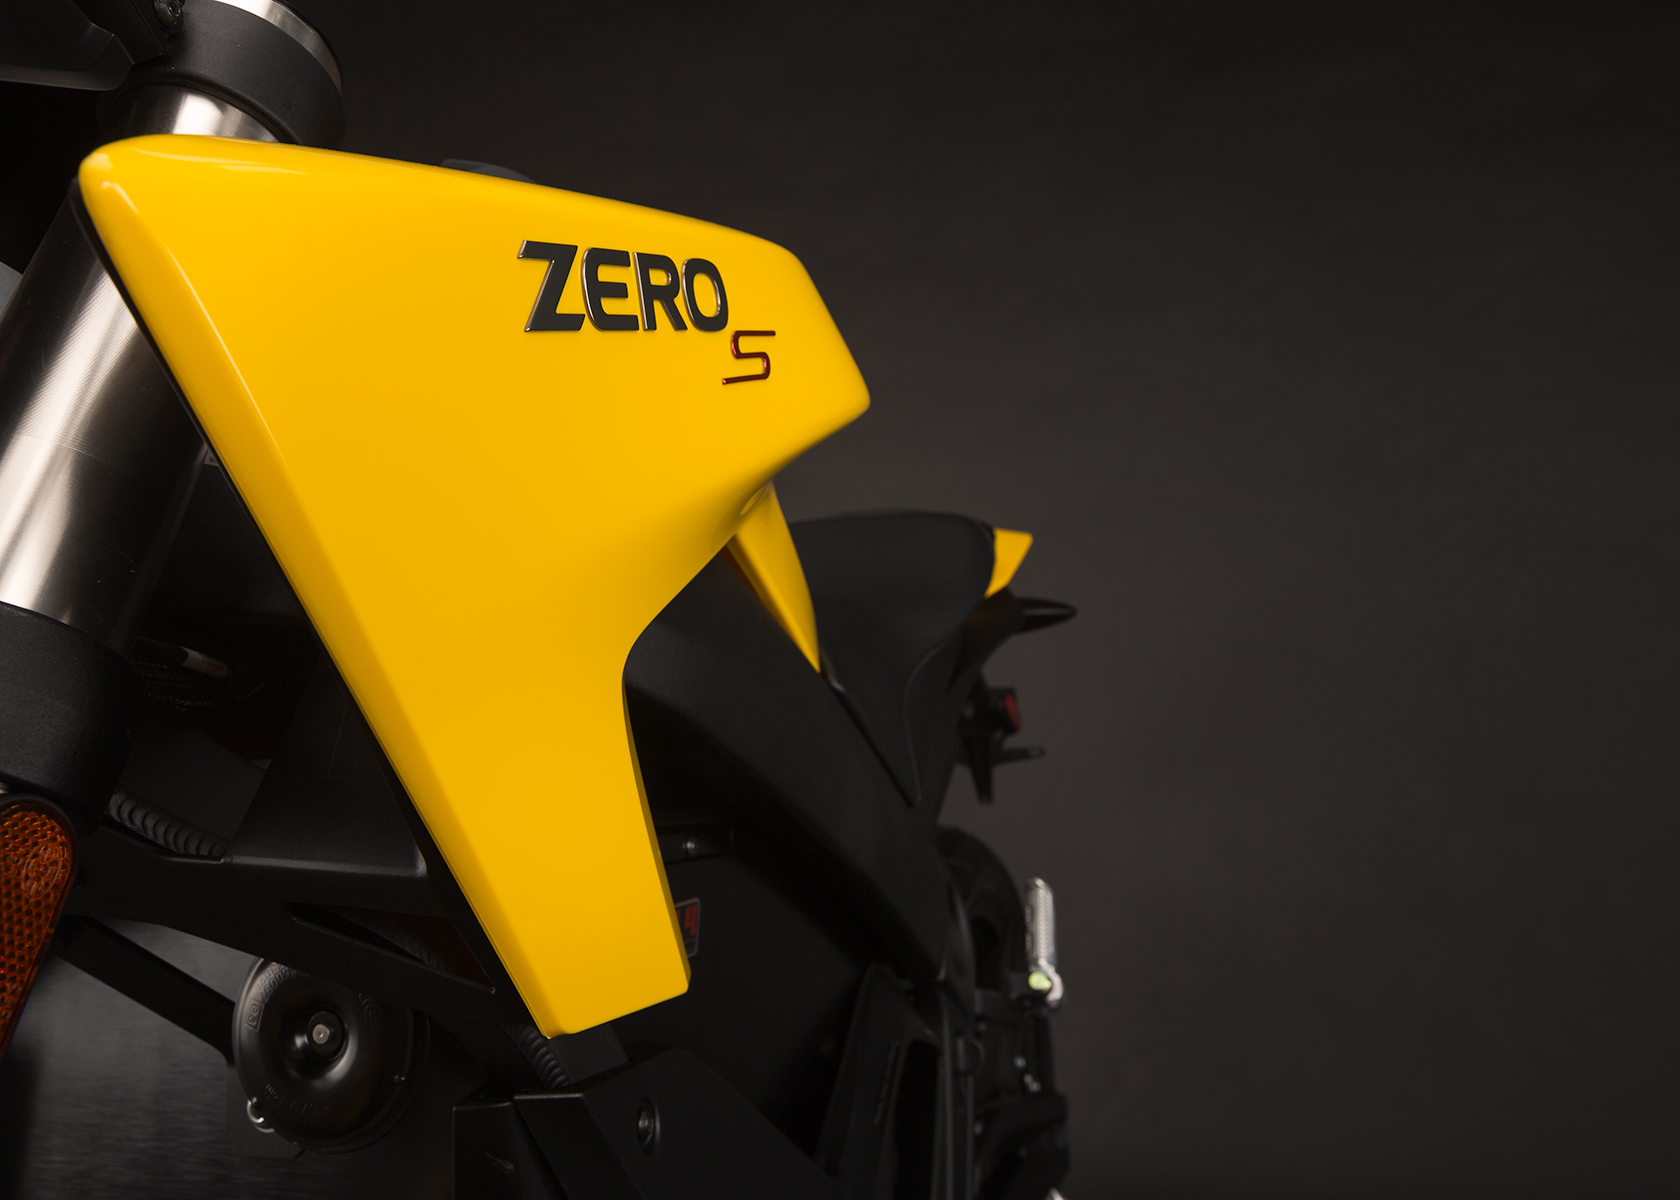 2014 Zero S Electric Motorcycle: Emblem